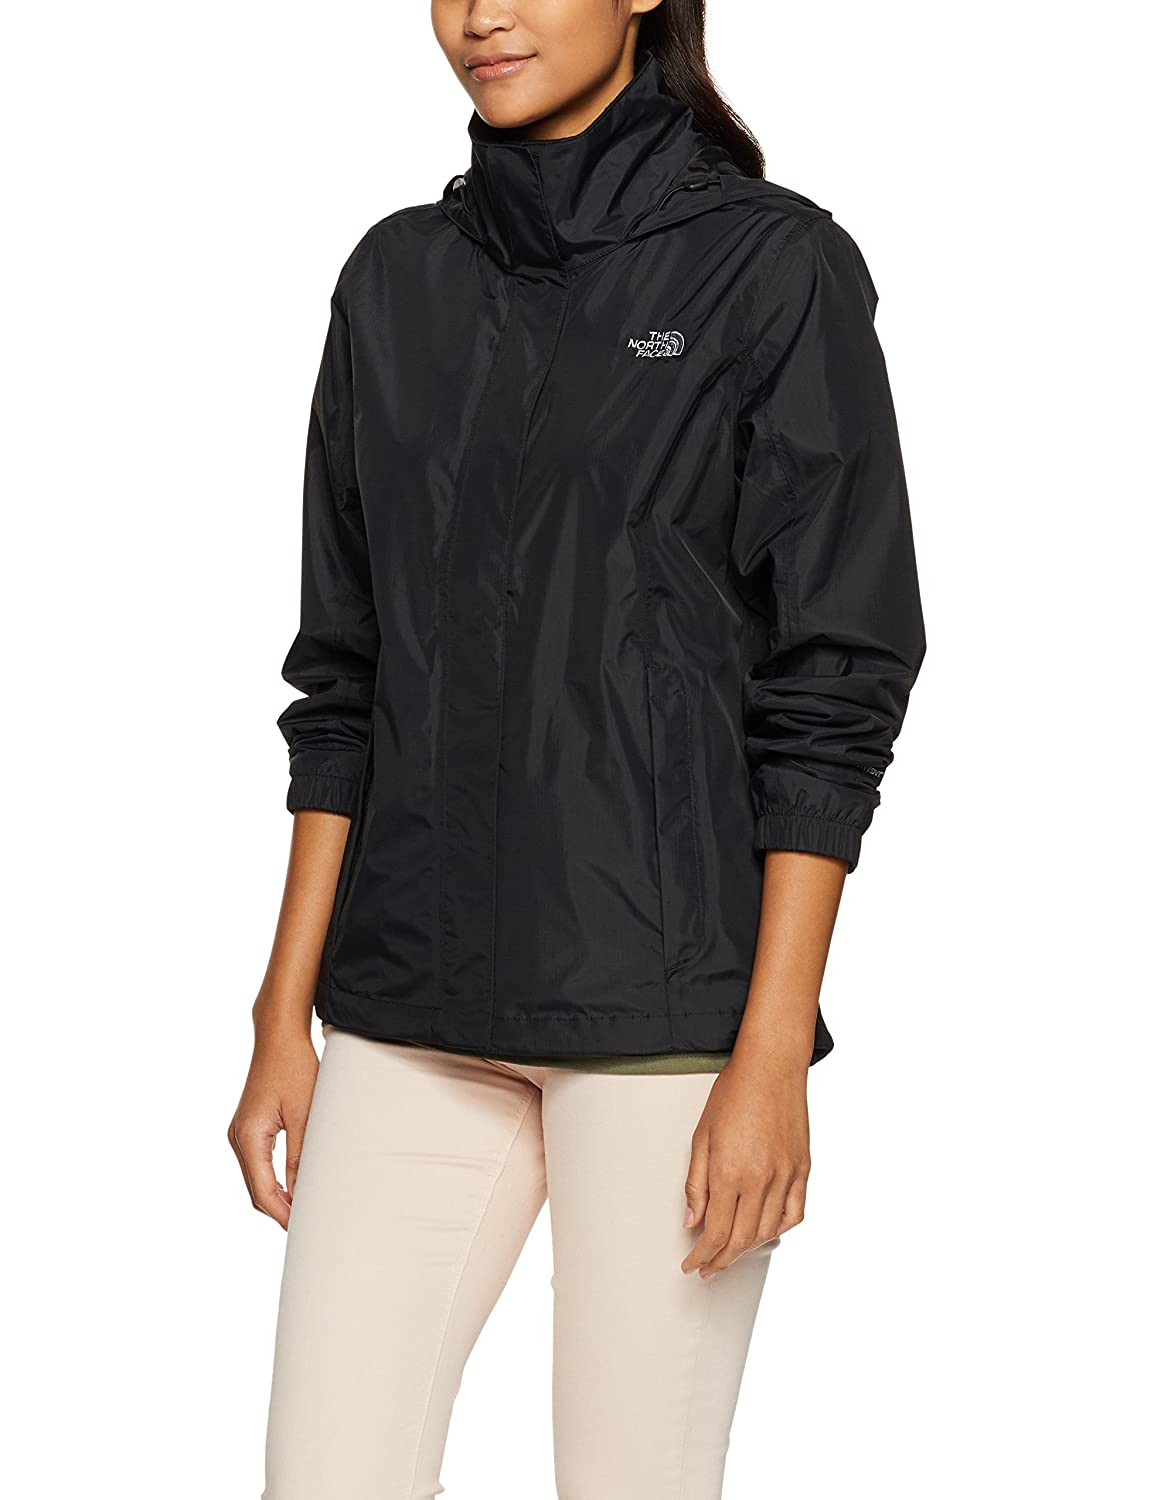 TALLA M. The North Face W Resolve 2 Chaqueta, Mujer